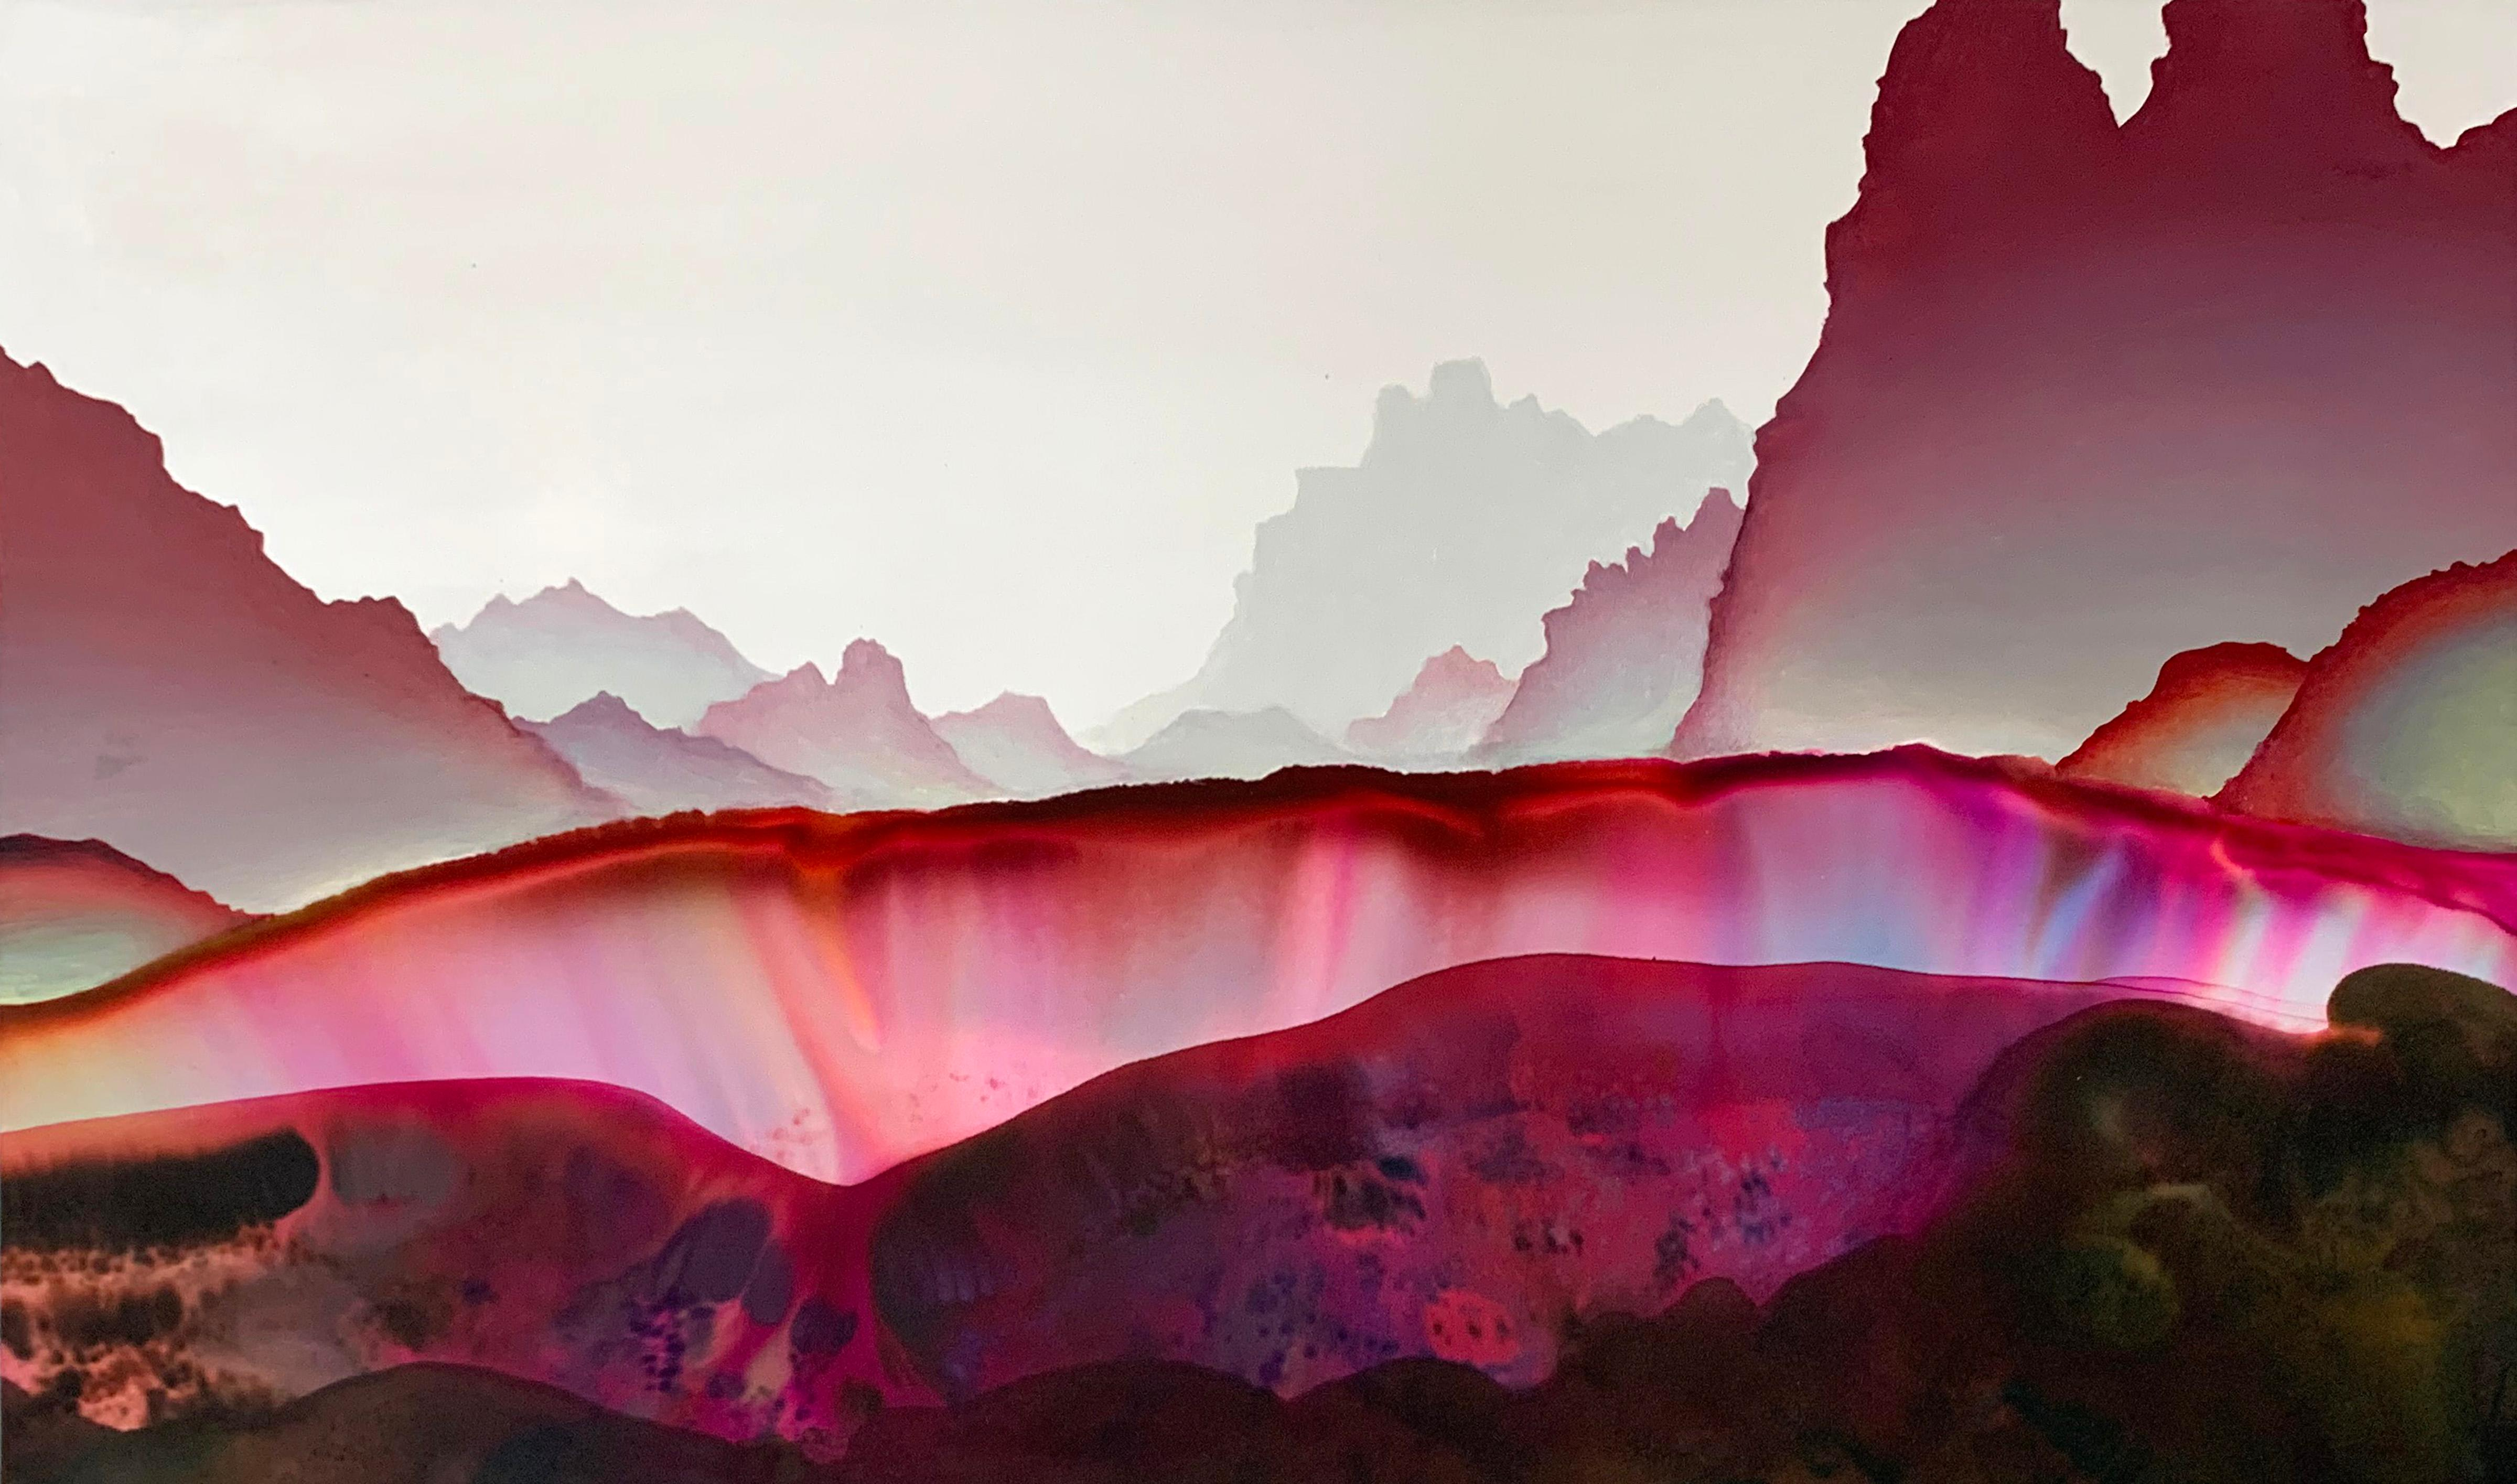 Her Compliments, Horizontal Abstract Landscape in Pink, Dark Red, Brown, White